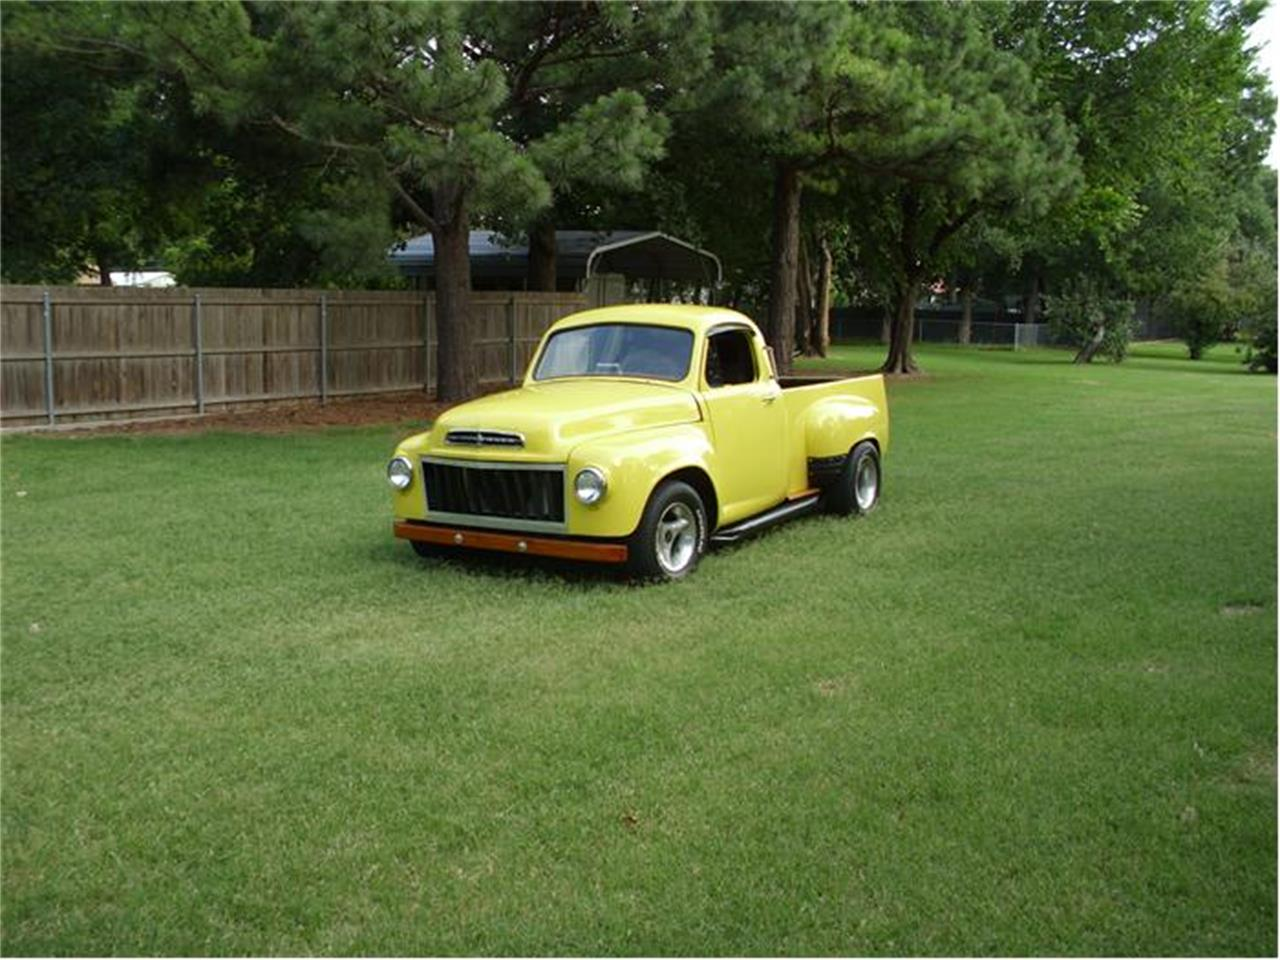 Trucks For Sale In Okc >> 1951 Studebaker Pickup for Sale | ClassicCars.com | CC-468630